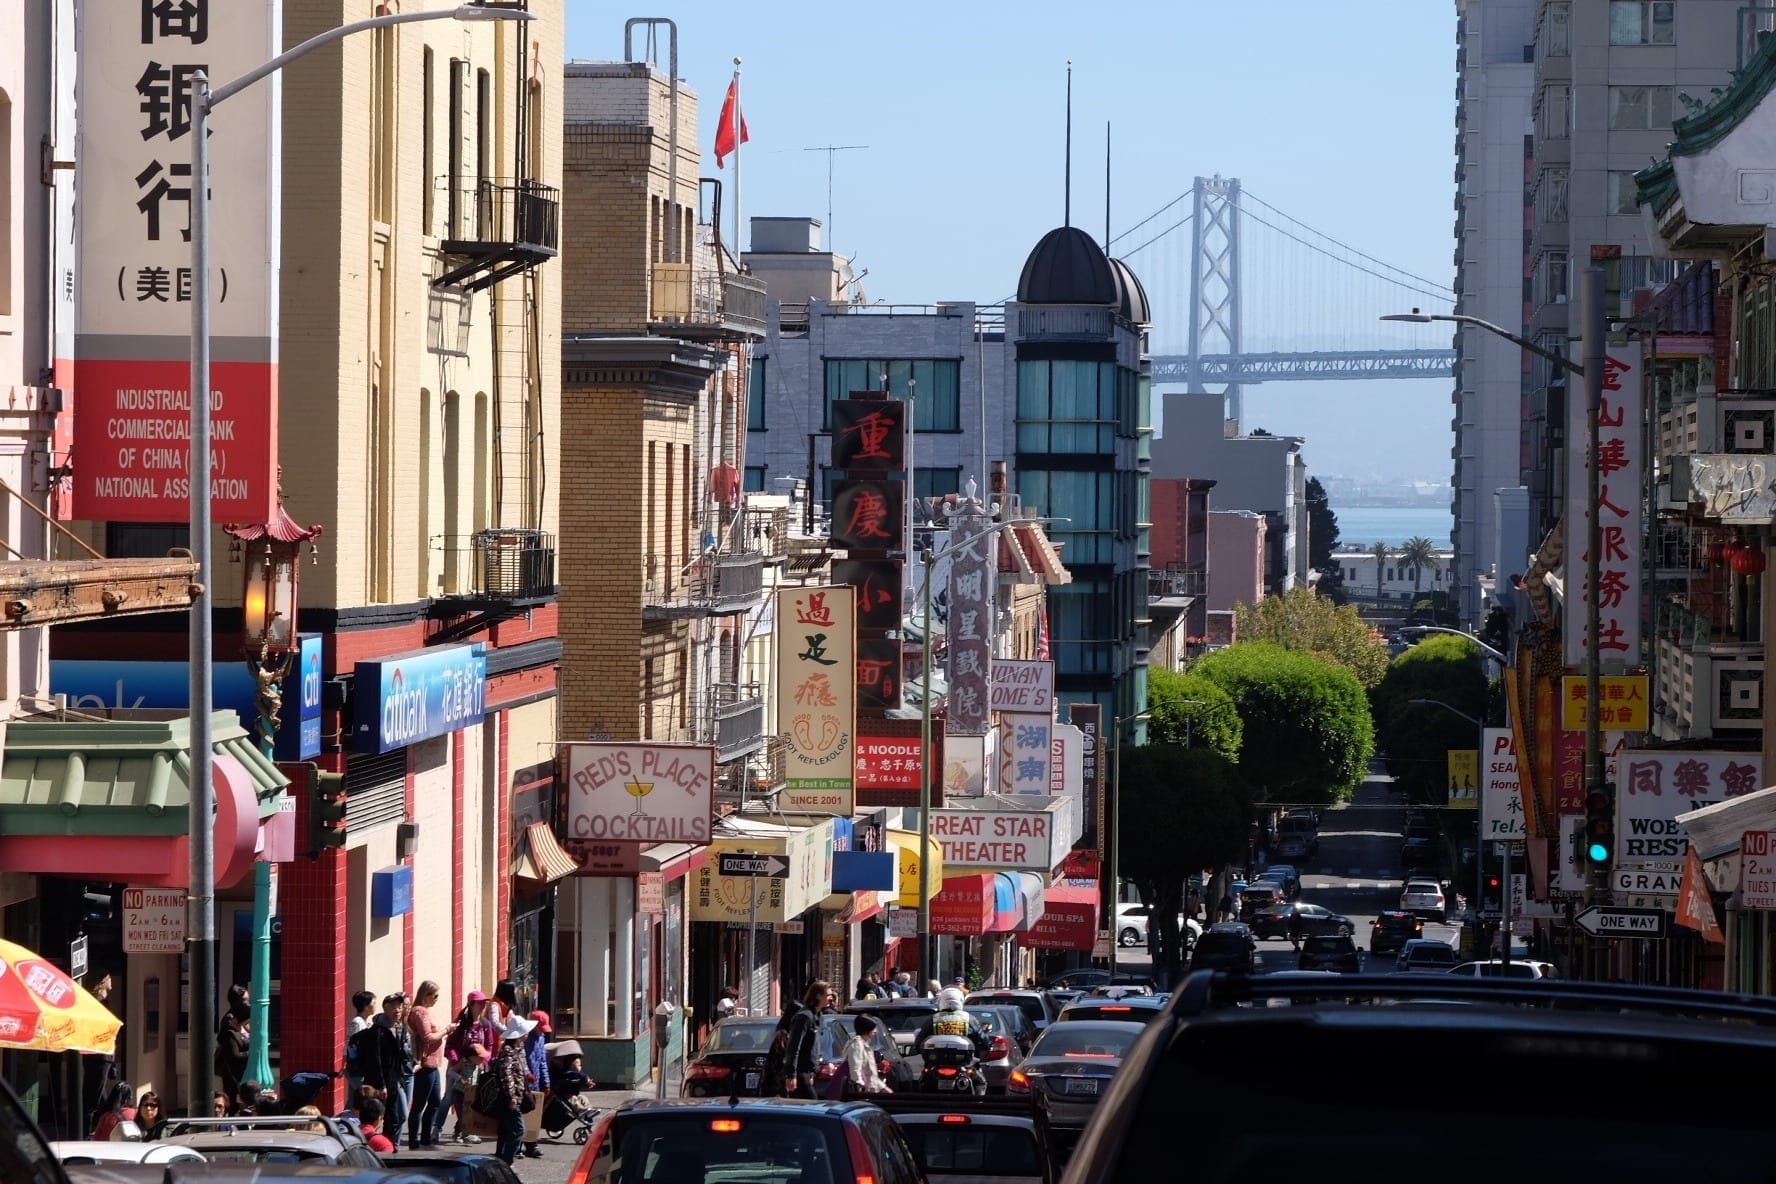 View over Chinatown in San Francisco, lots of store signs jutting out at angles, leading to a bridge underneath a blue sky.